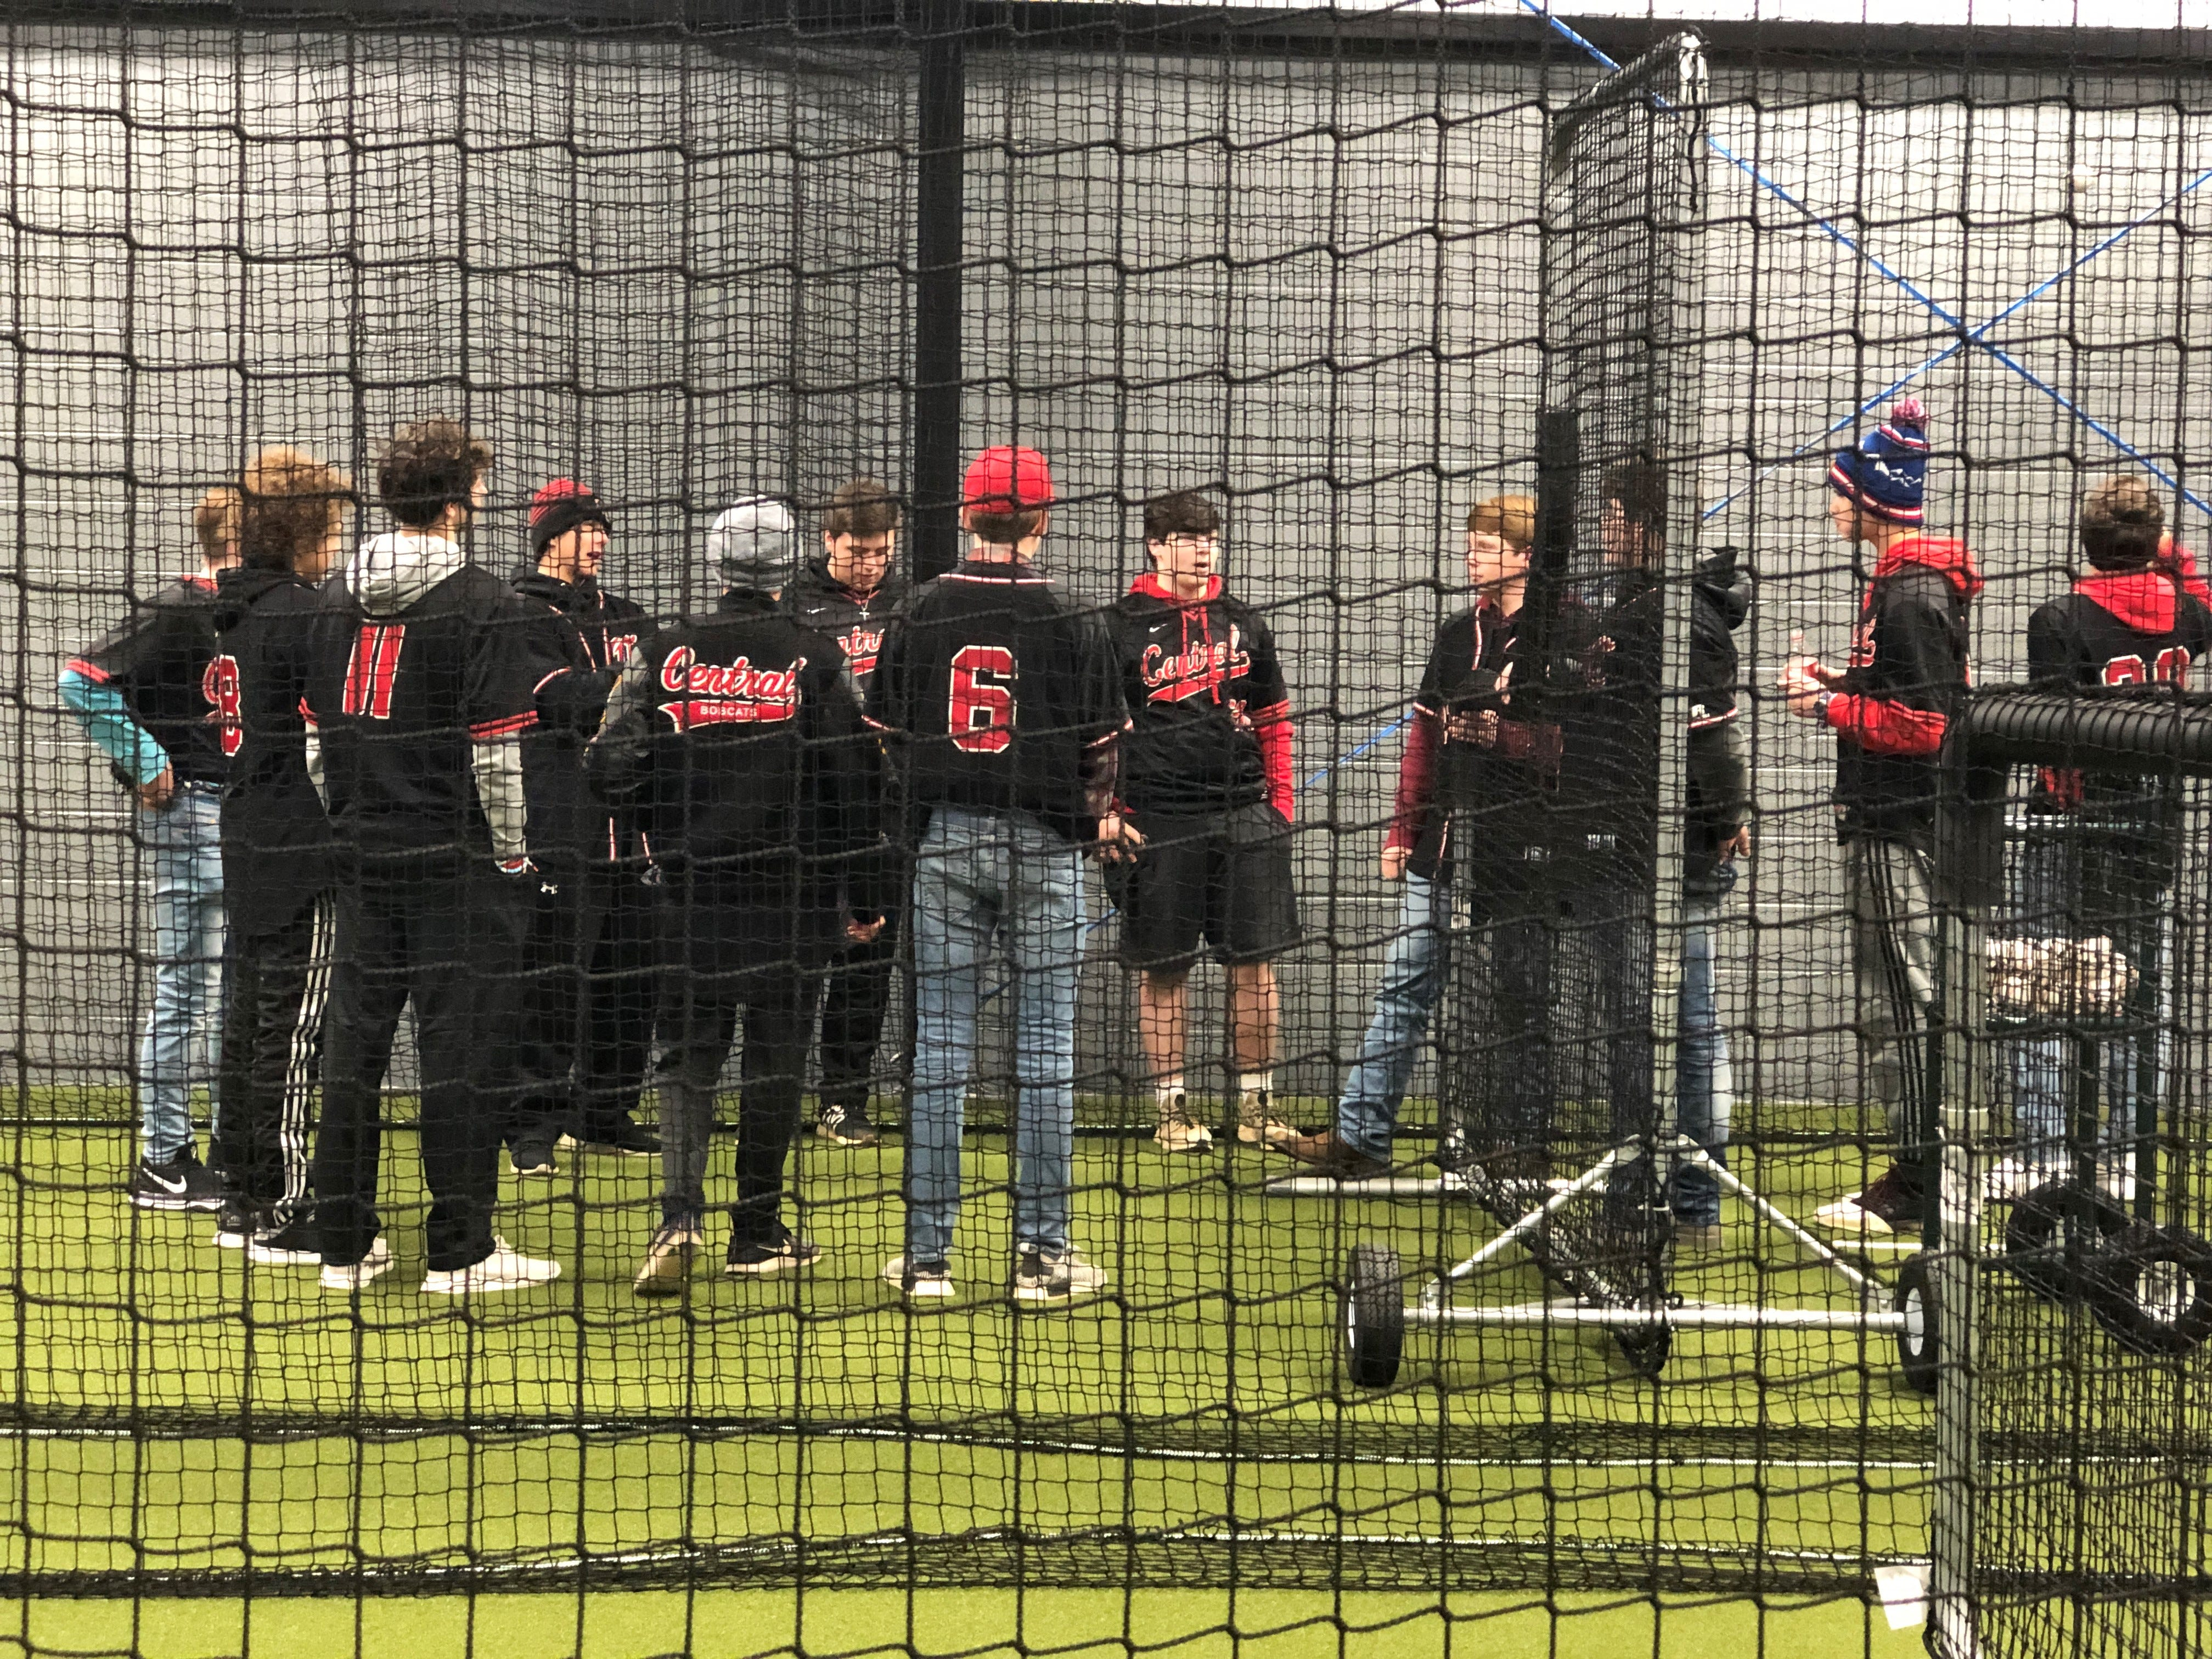 "Central High School baseball players check out the new indoor Hitting Facility. ""We wanted the community to come by and see what the building looks like inside - we had a lot of community support,"" said Andy Bolton, who headed the three-year project."